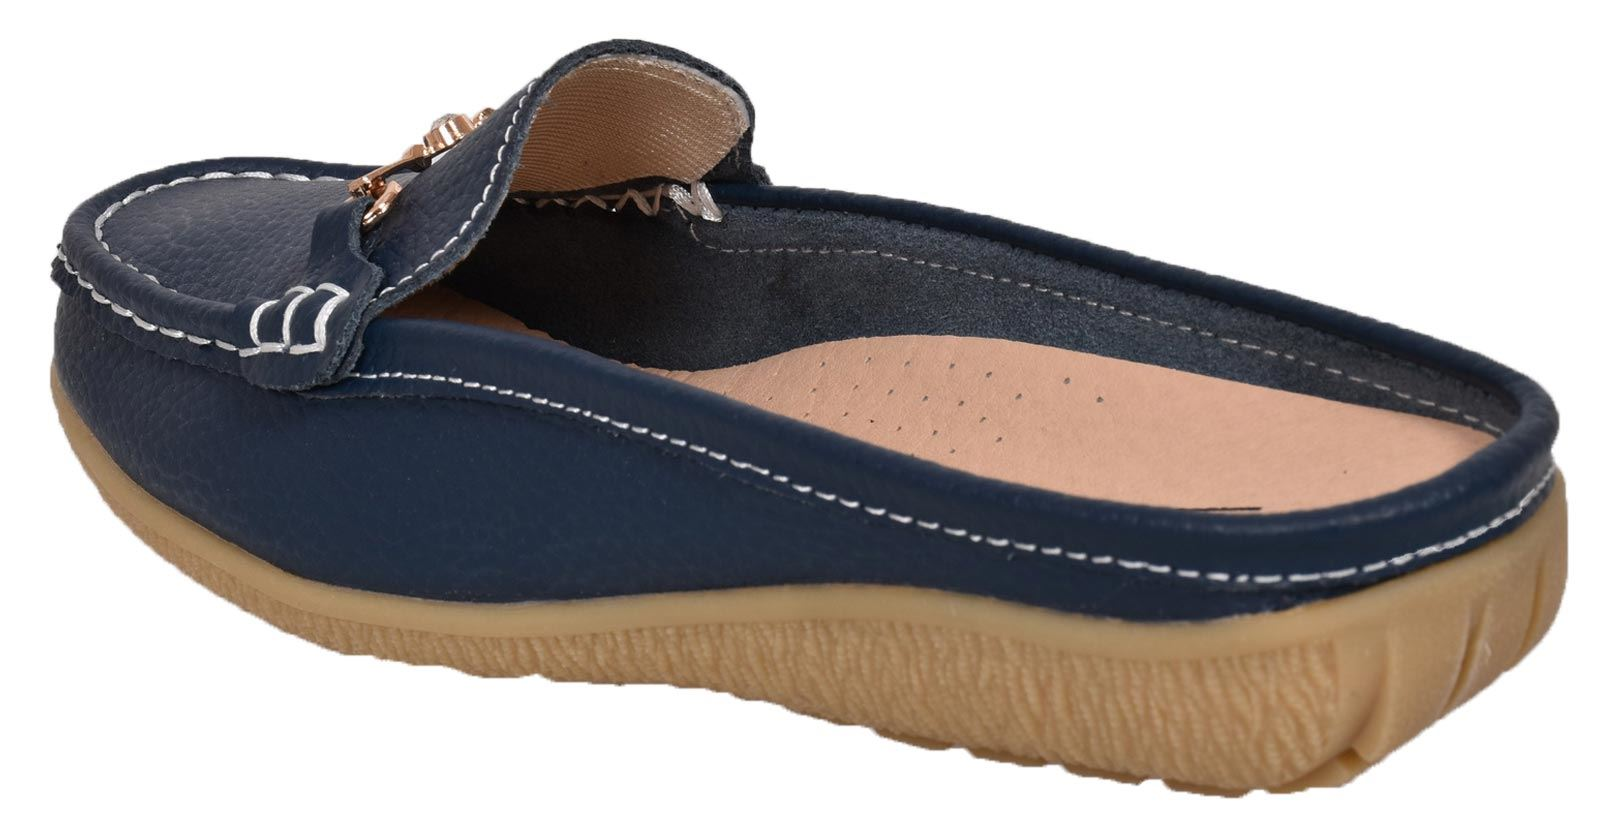 Ladies-Leather-Loafer-Mules-Comfort-Shoes-Womens-Slider-Moccasins-Shoes thumbnail 27